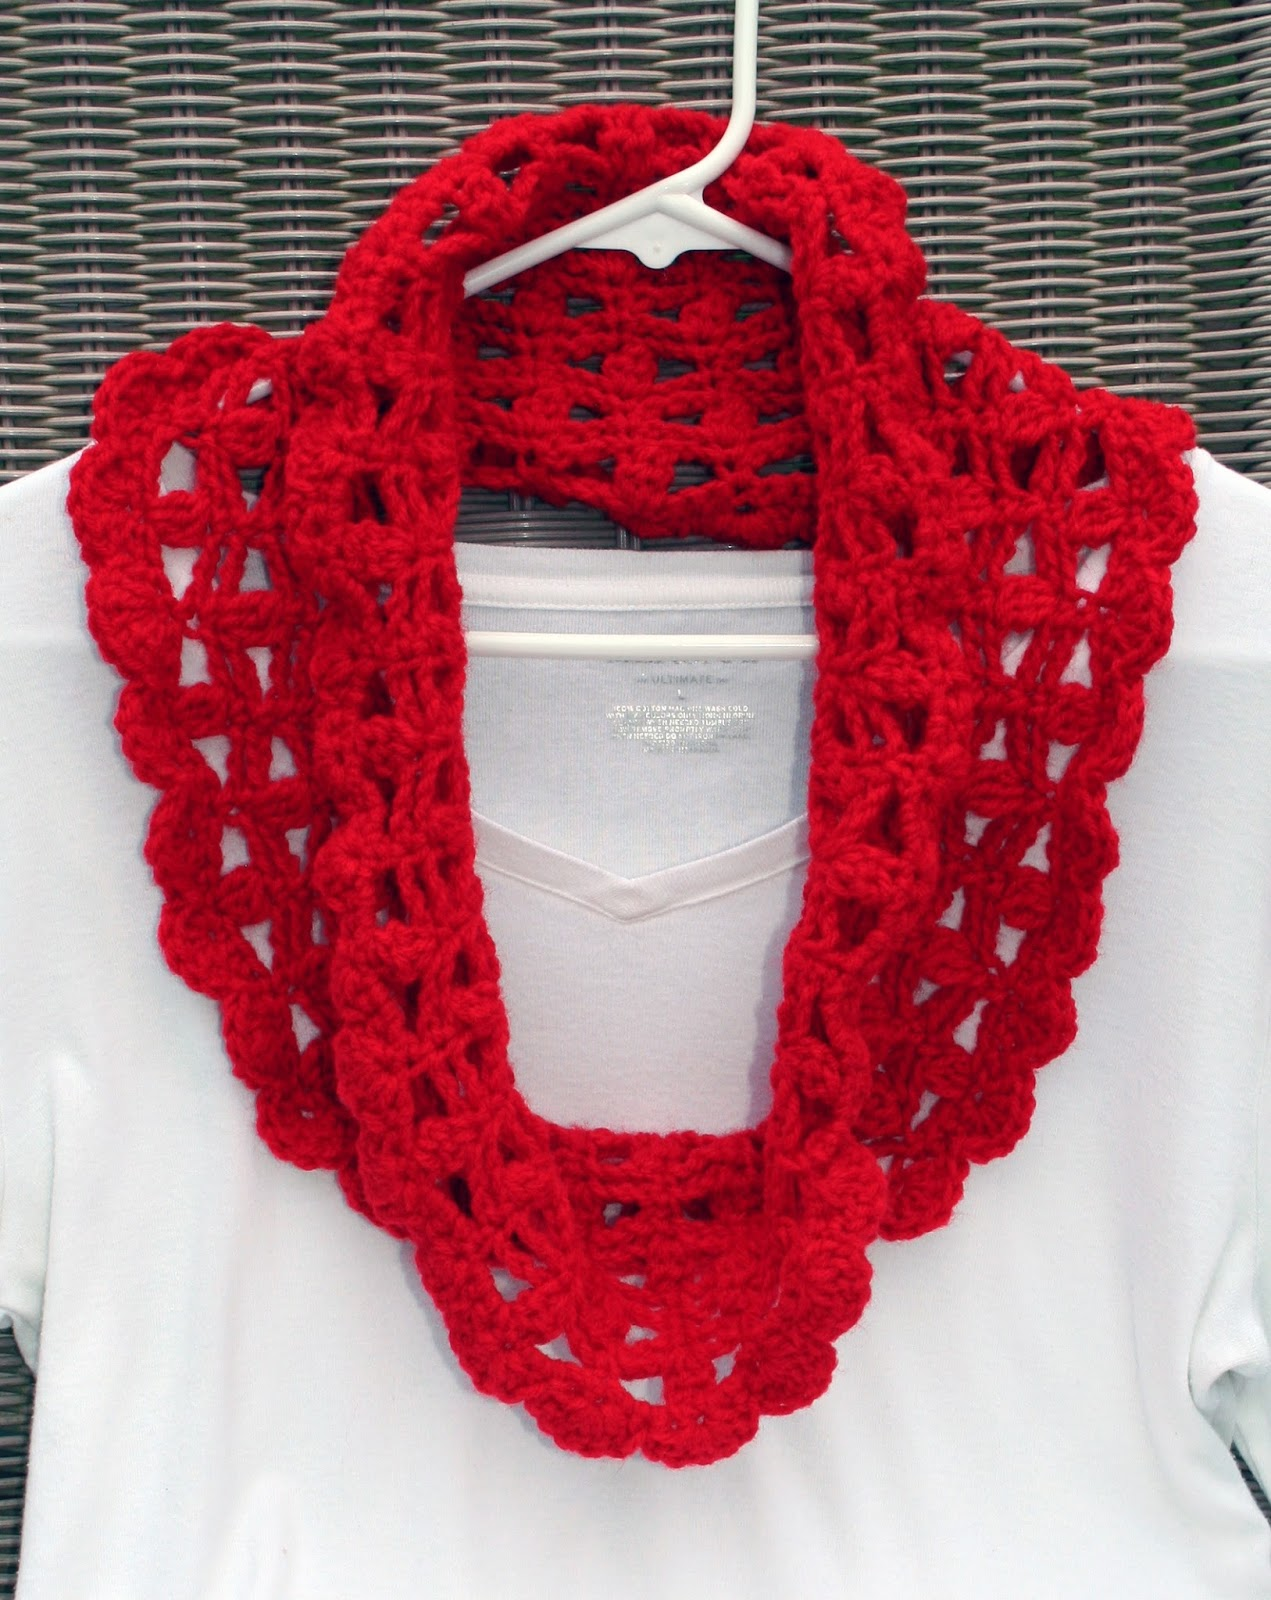 Free Crochet Patterns Cowls : Tampa Bay Crochet: Free Crochet Pattern: Lacy Crimson Cowl ...